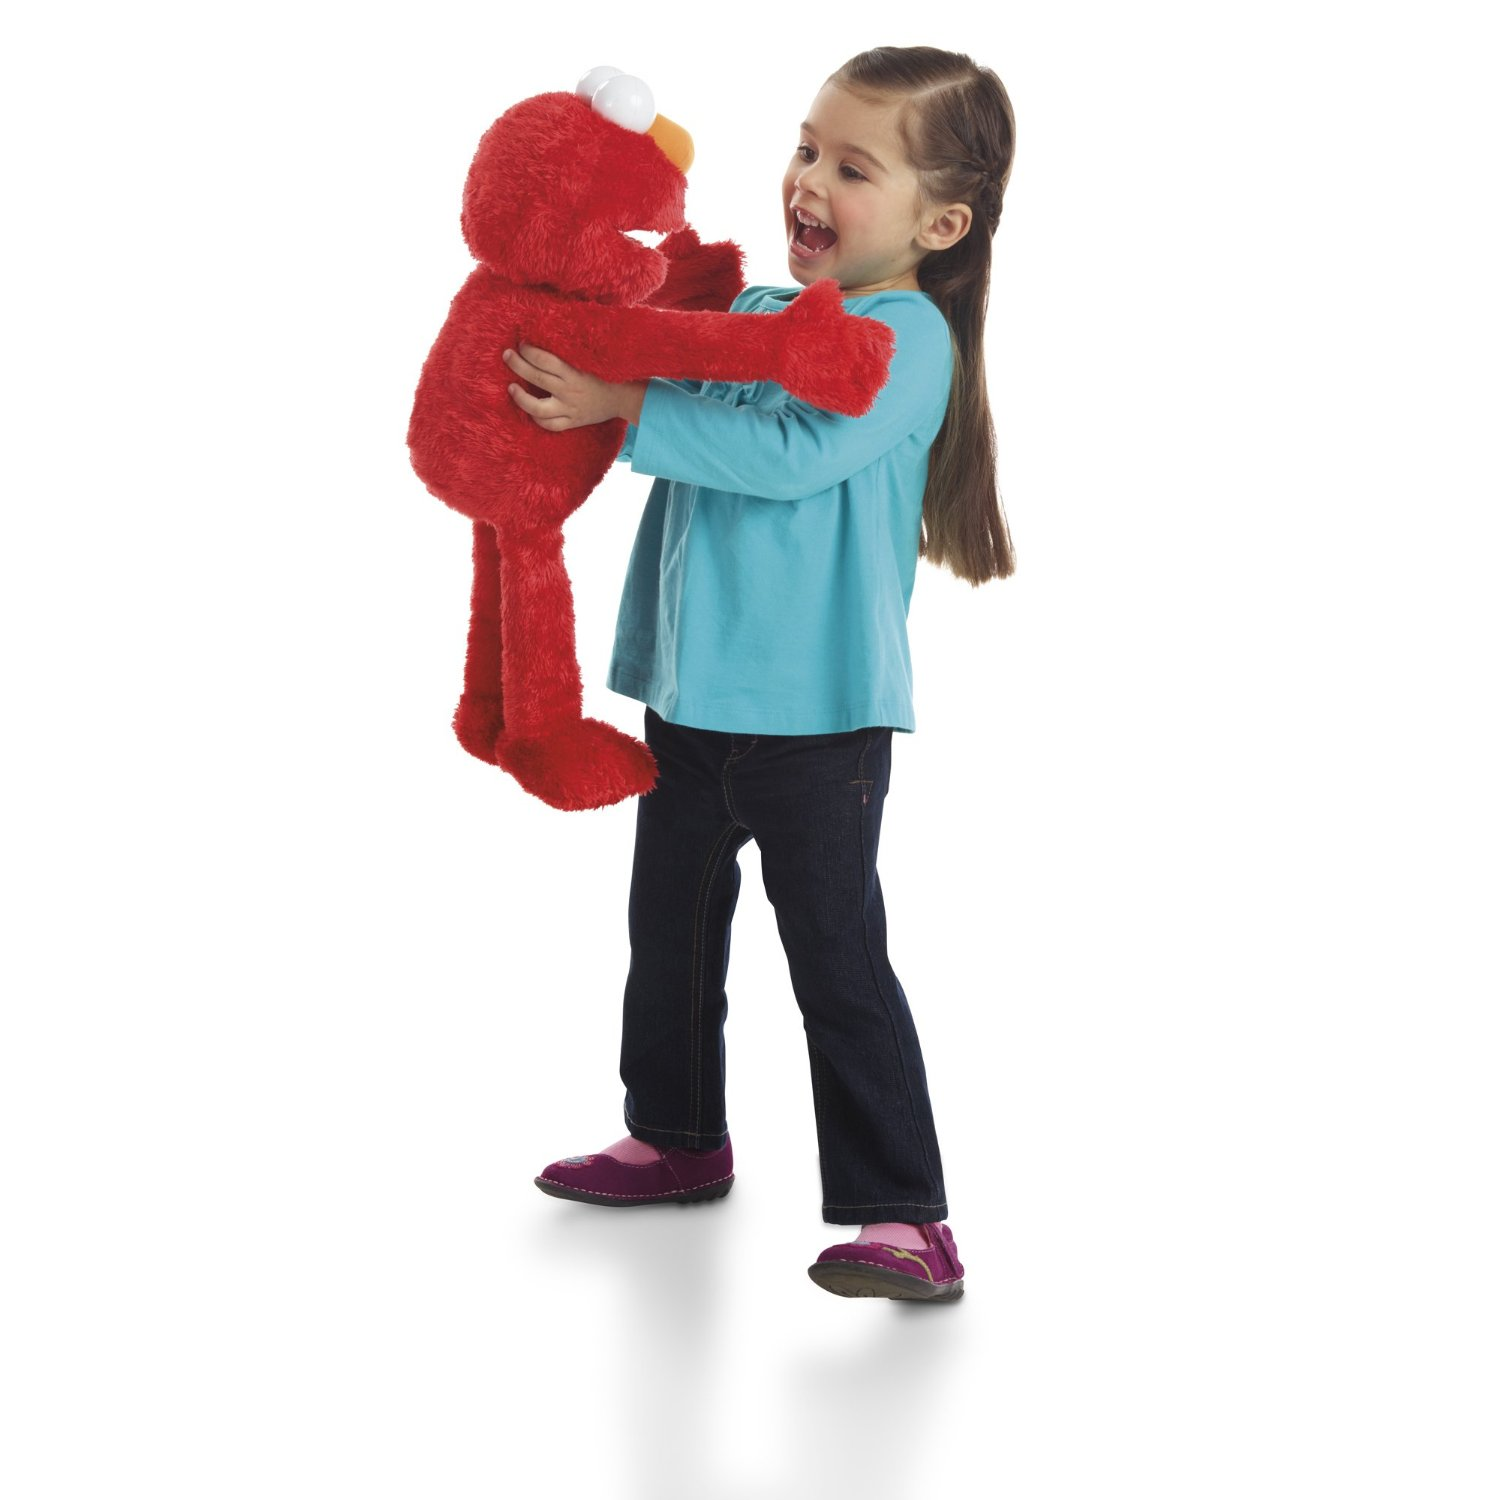 Tickle Me Elmo Review